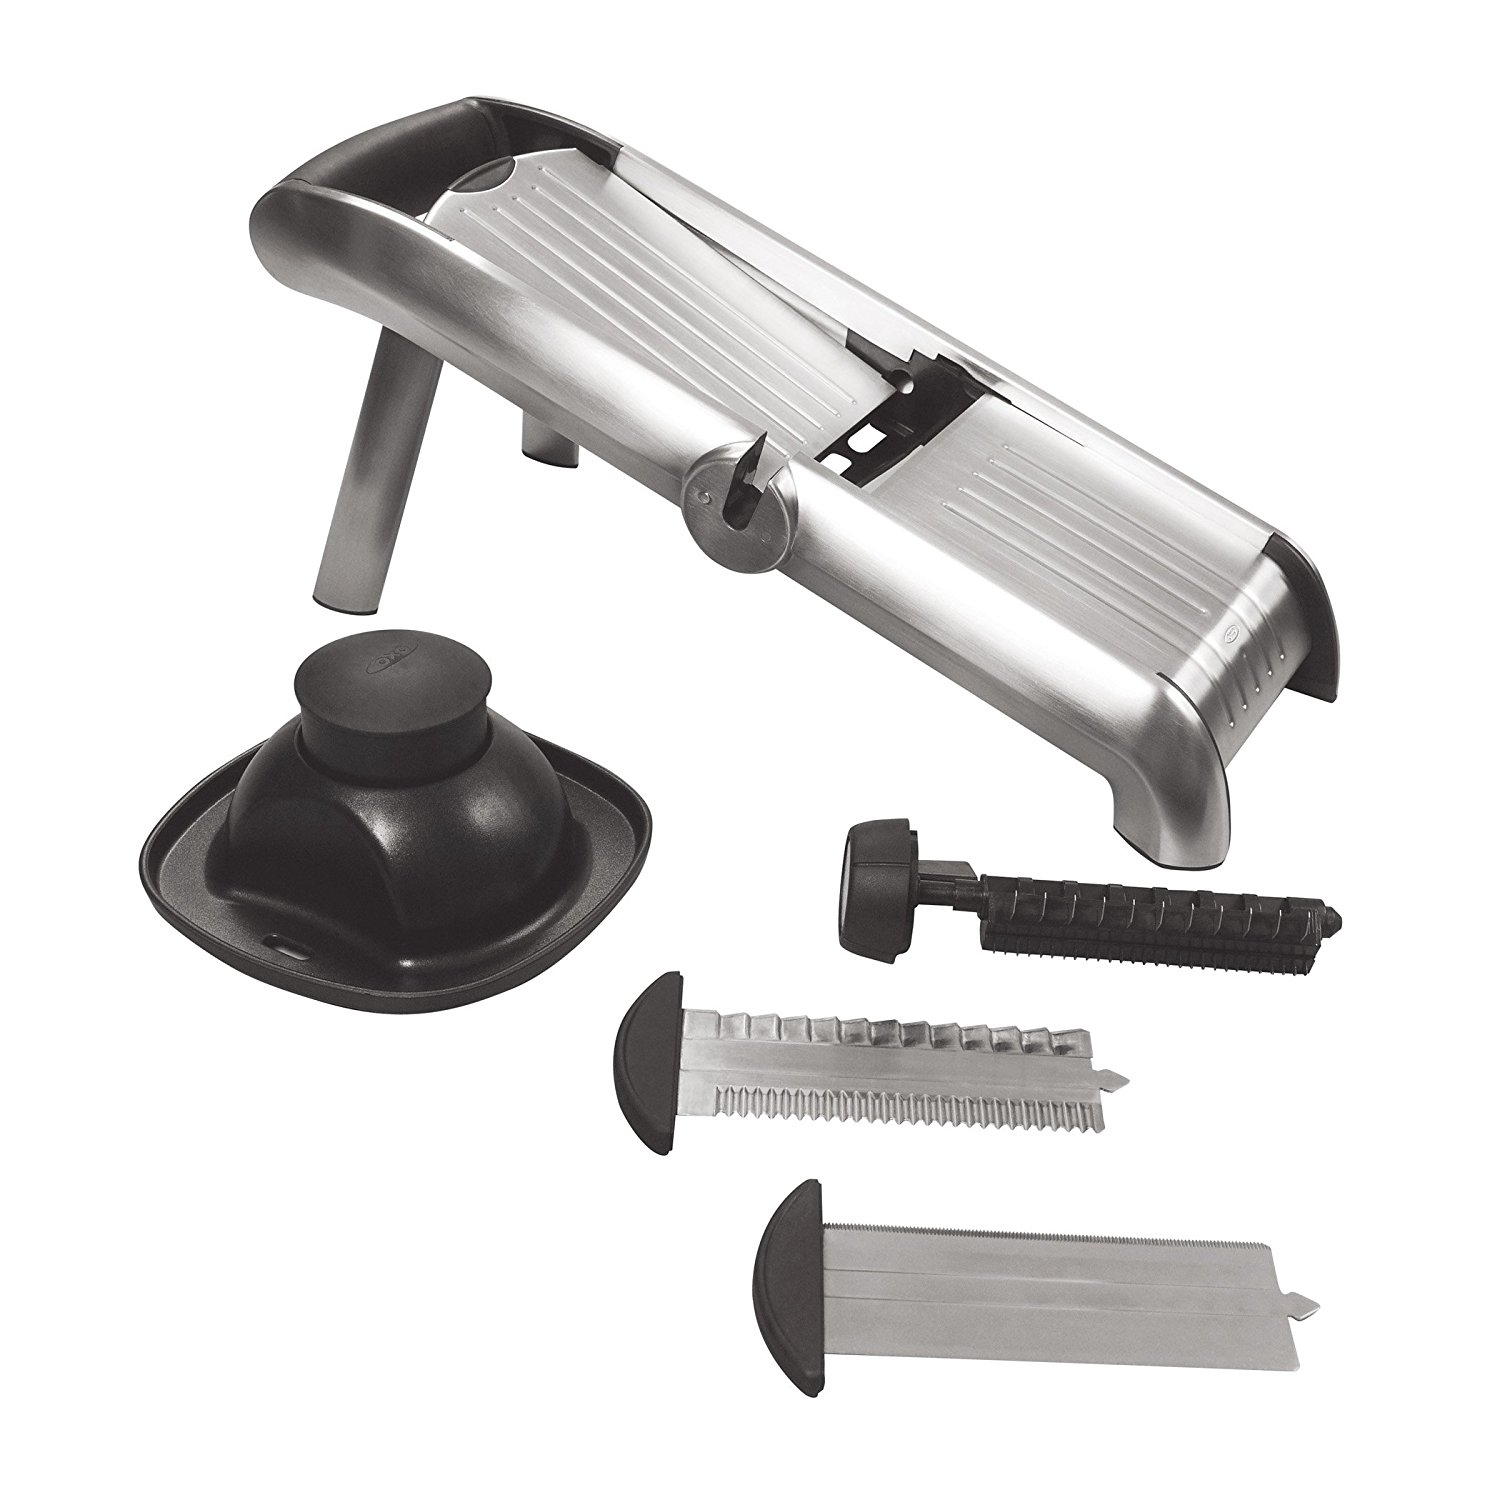 Best Mandoline Slicer-OXO Steel Chef's Mandoline Slicer